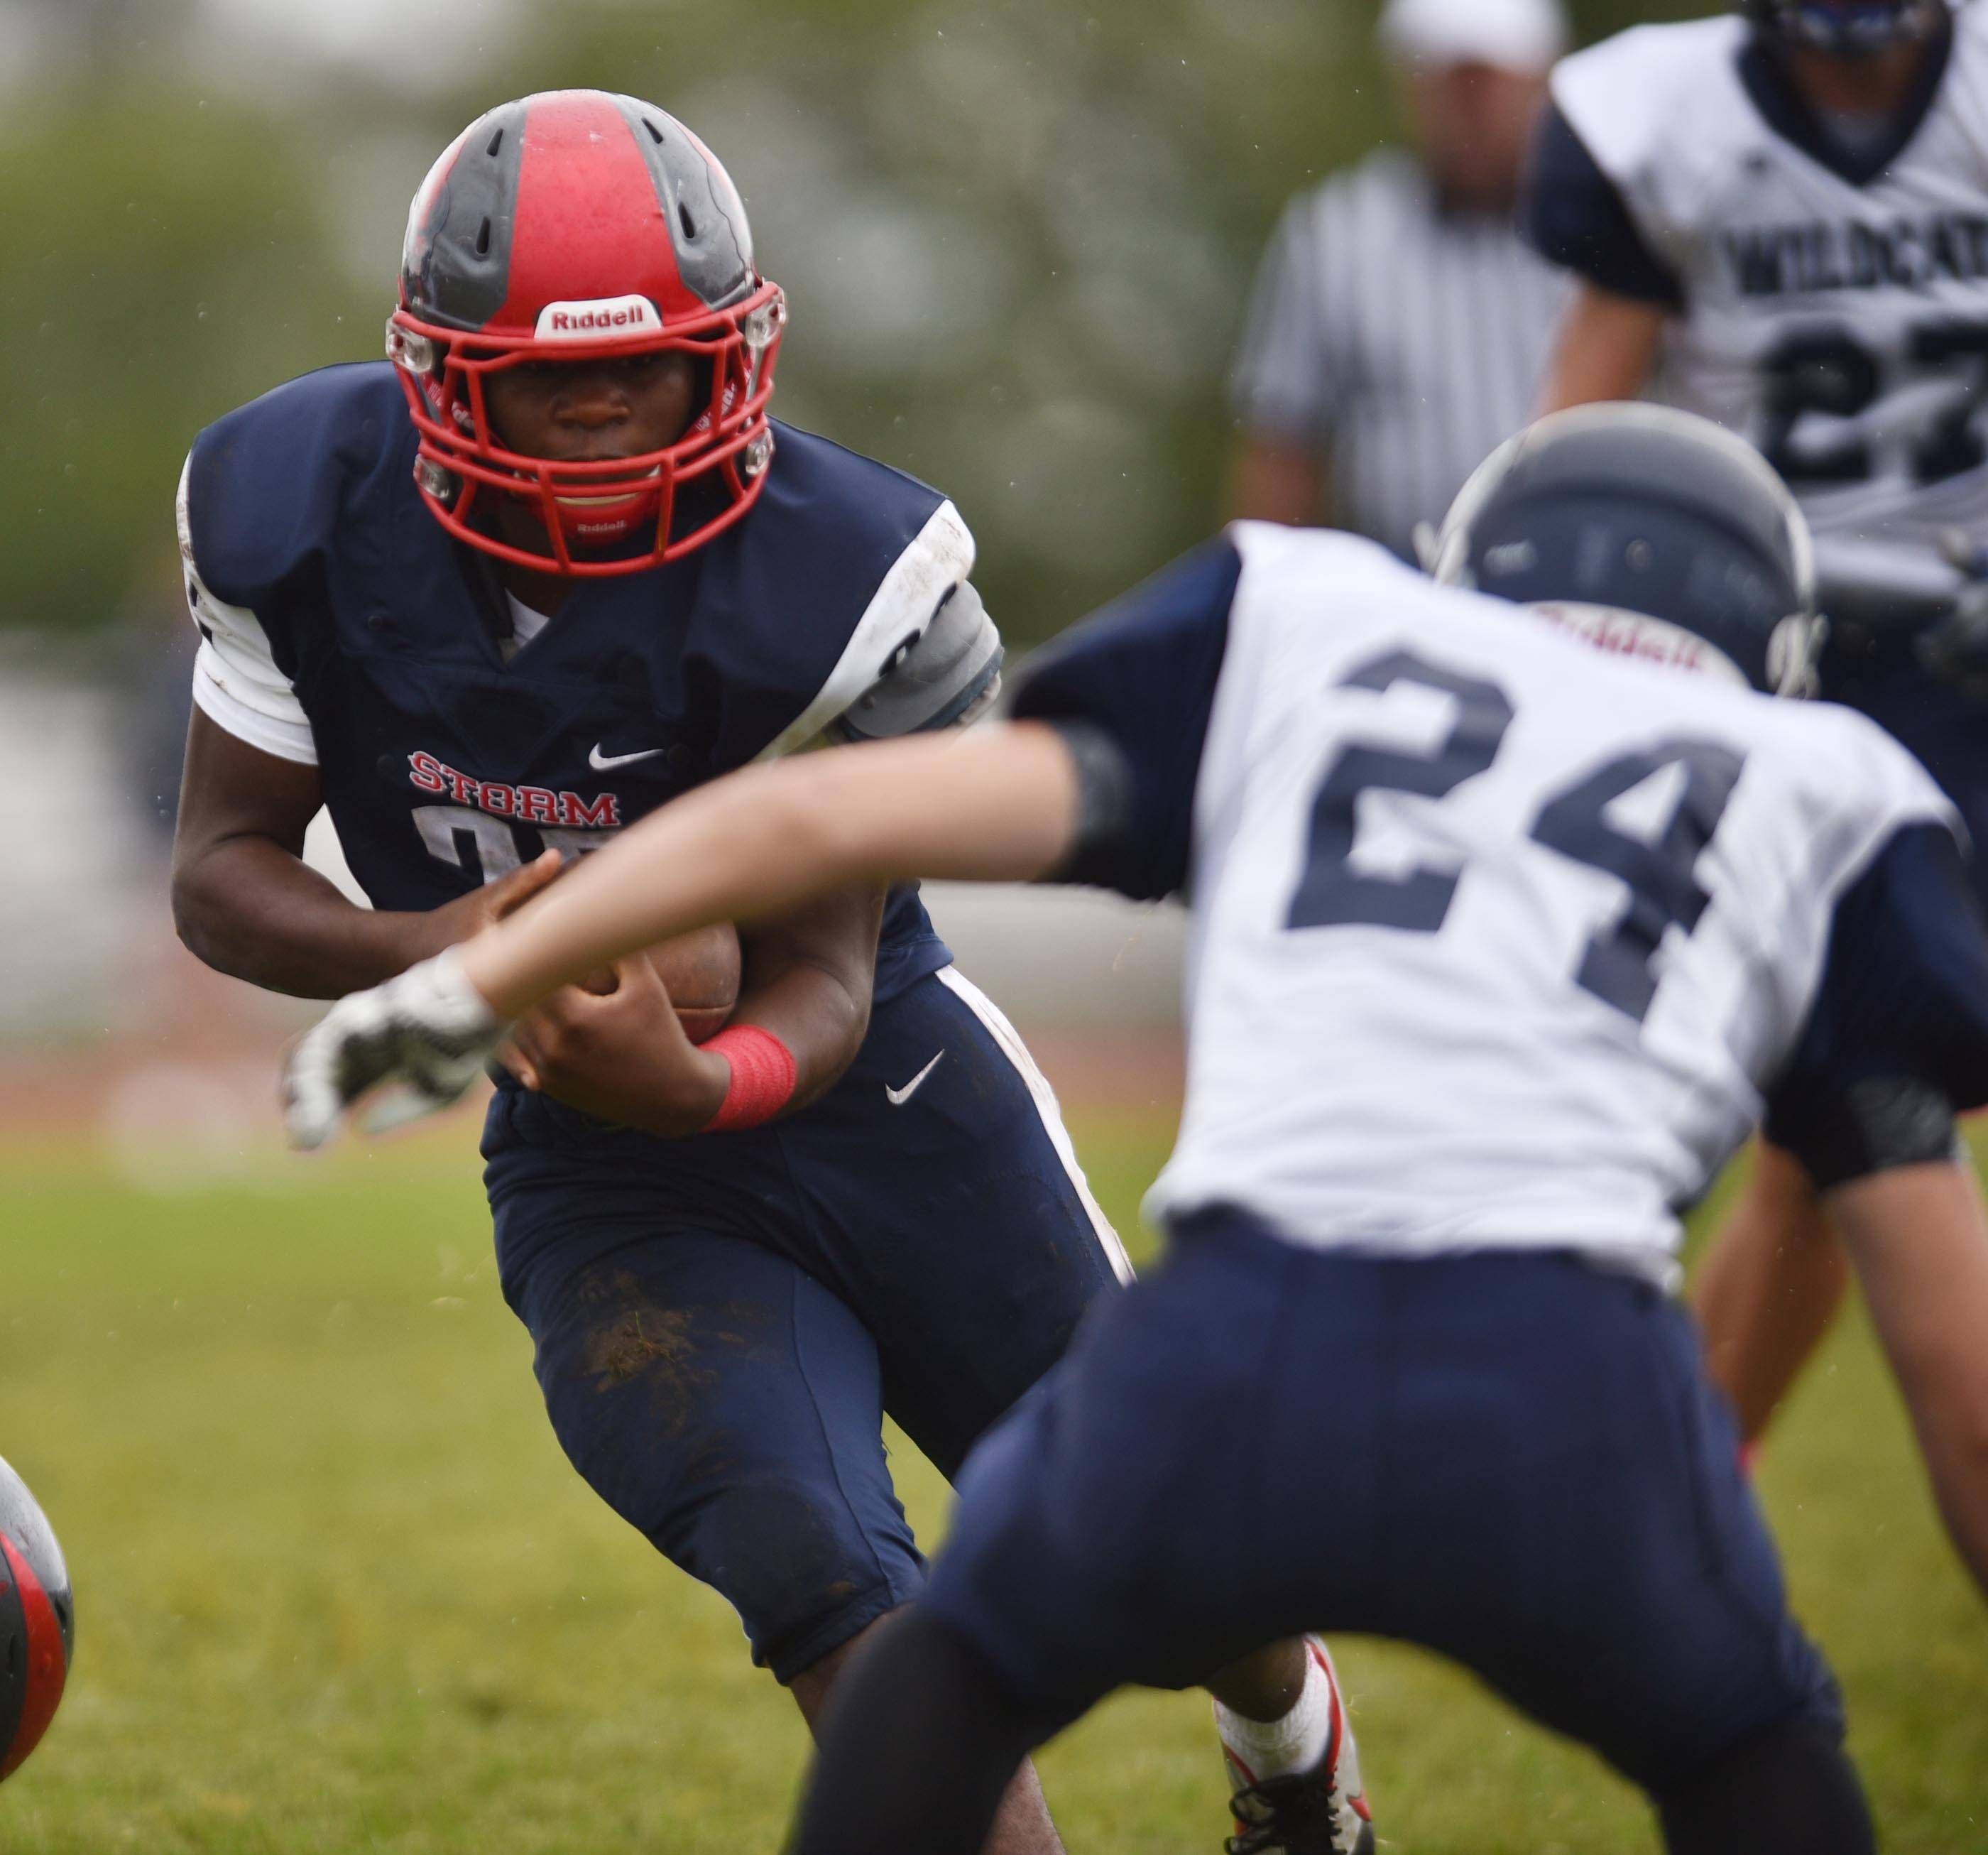 South Elgin's Monte Mardis tries to avoid West Chicago's DJ Poisson Saturday in South Elgin.